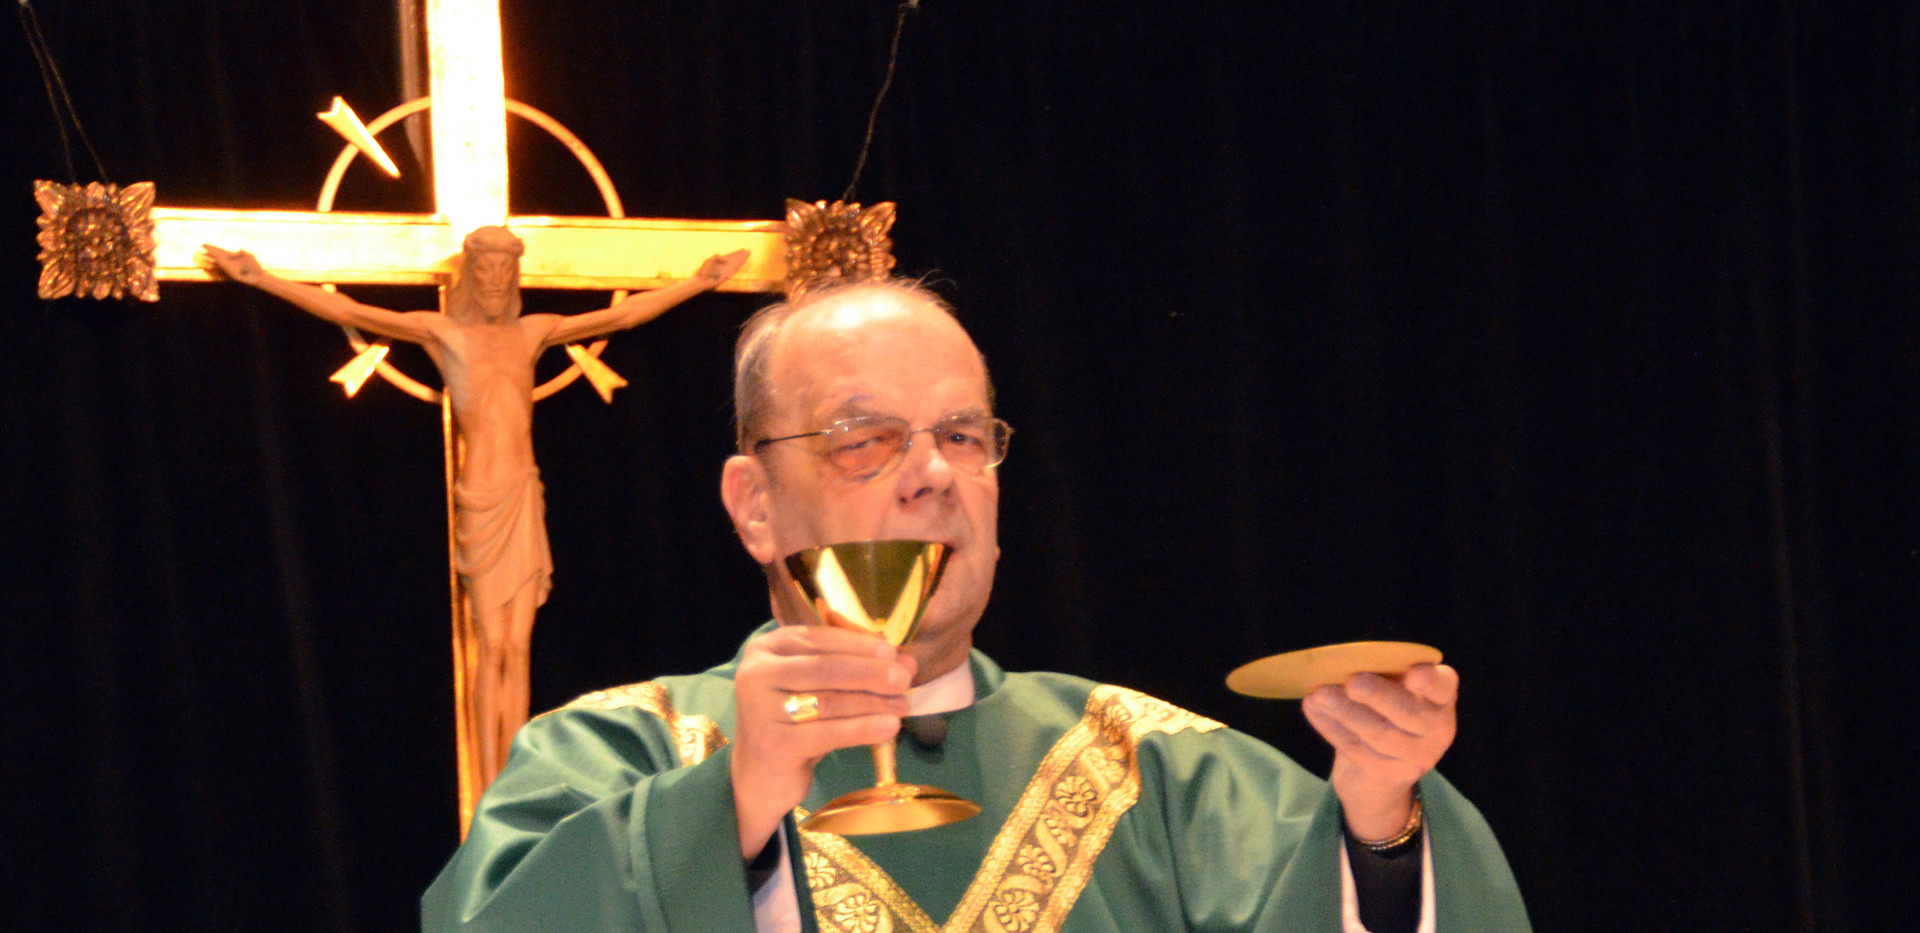 Priest Offers Up Bread and Wine.jpg